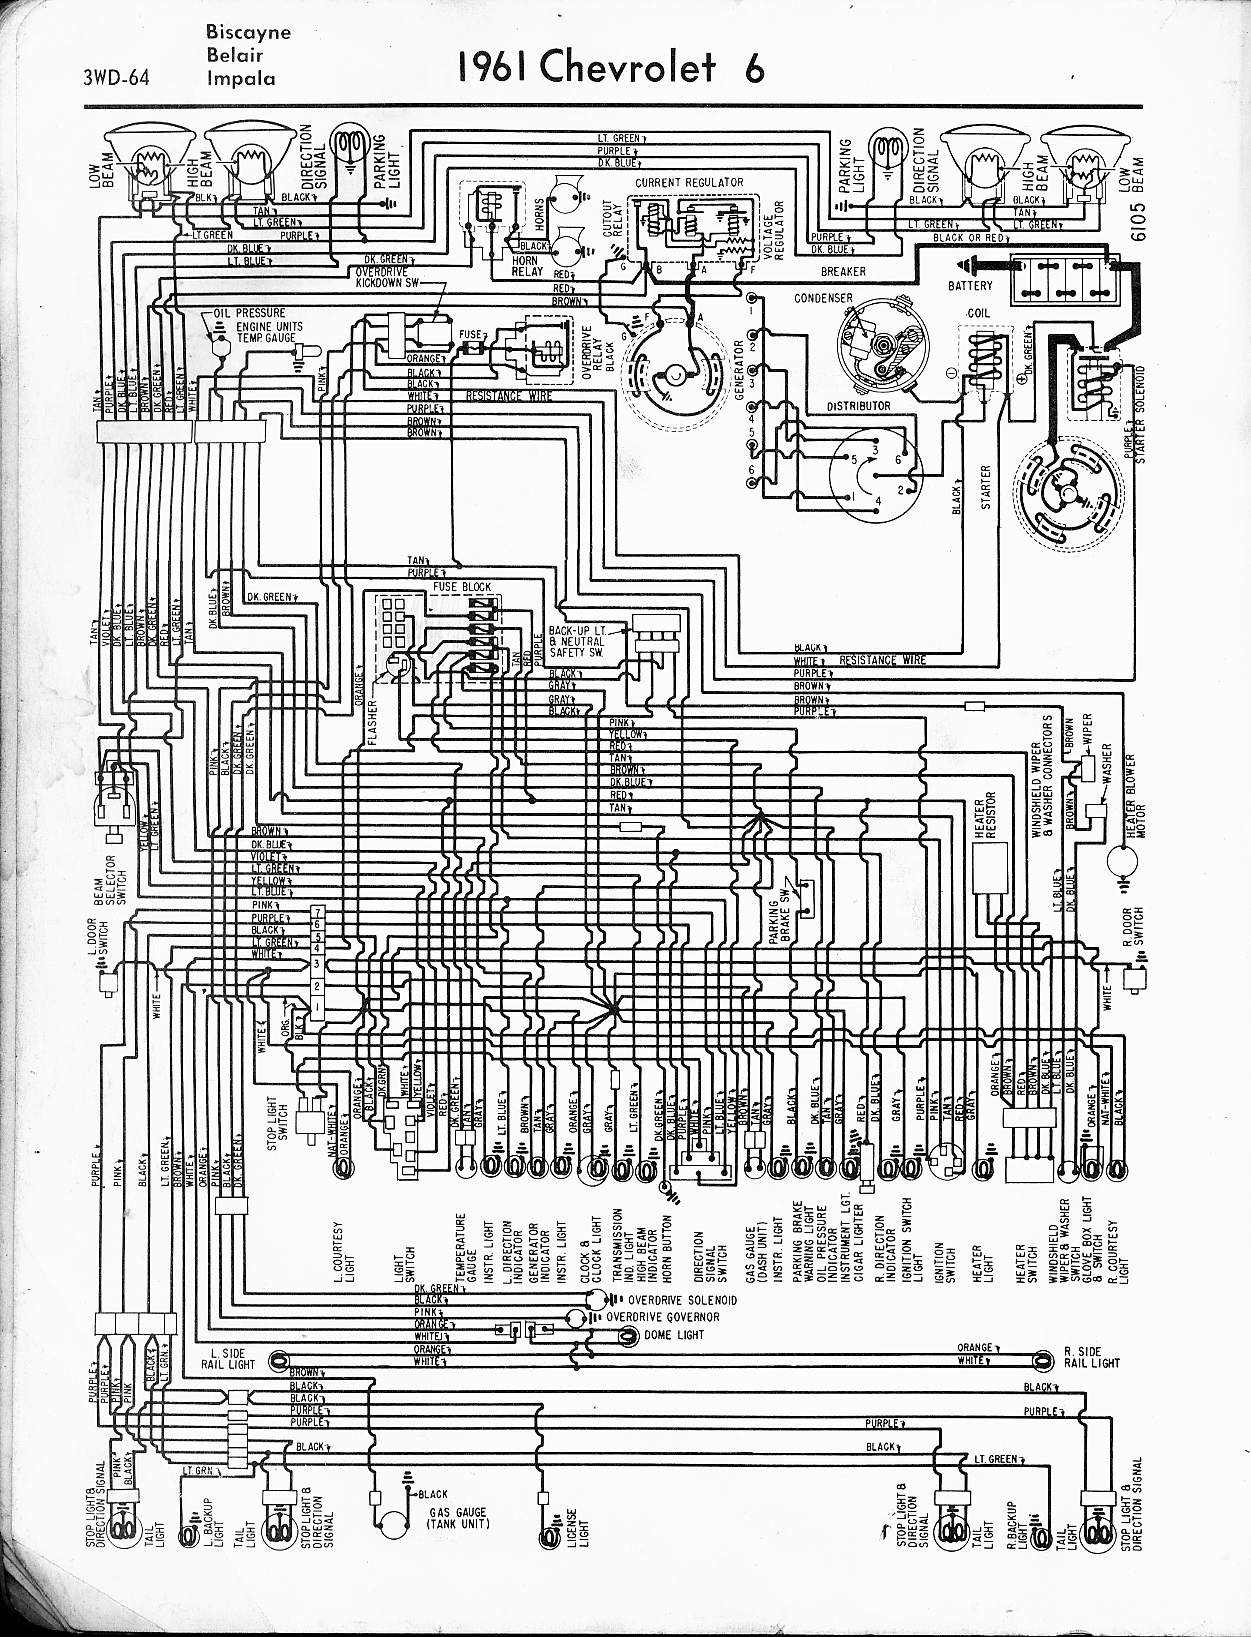 Ignition Wiring Diagram For A 1960 Chevrolet Impala Just Another 1965 Falcon 57 65 Chevy Diagrams Rh Oldcarmanualproject Com Gmc Ford